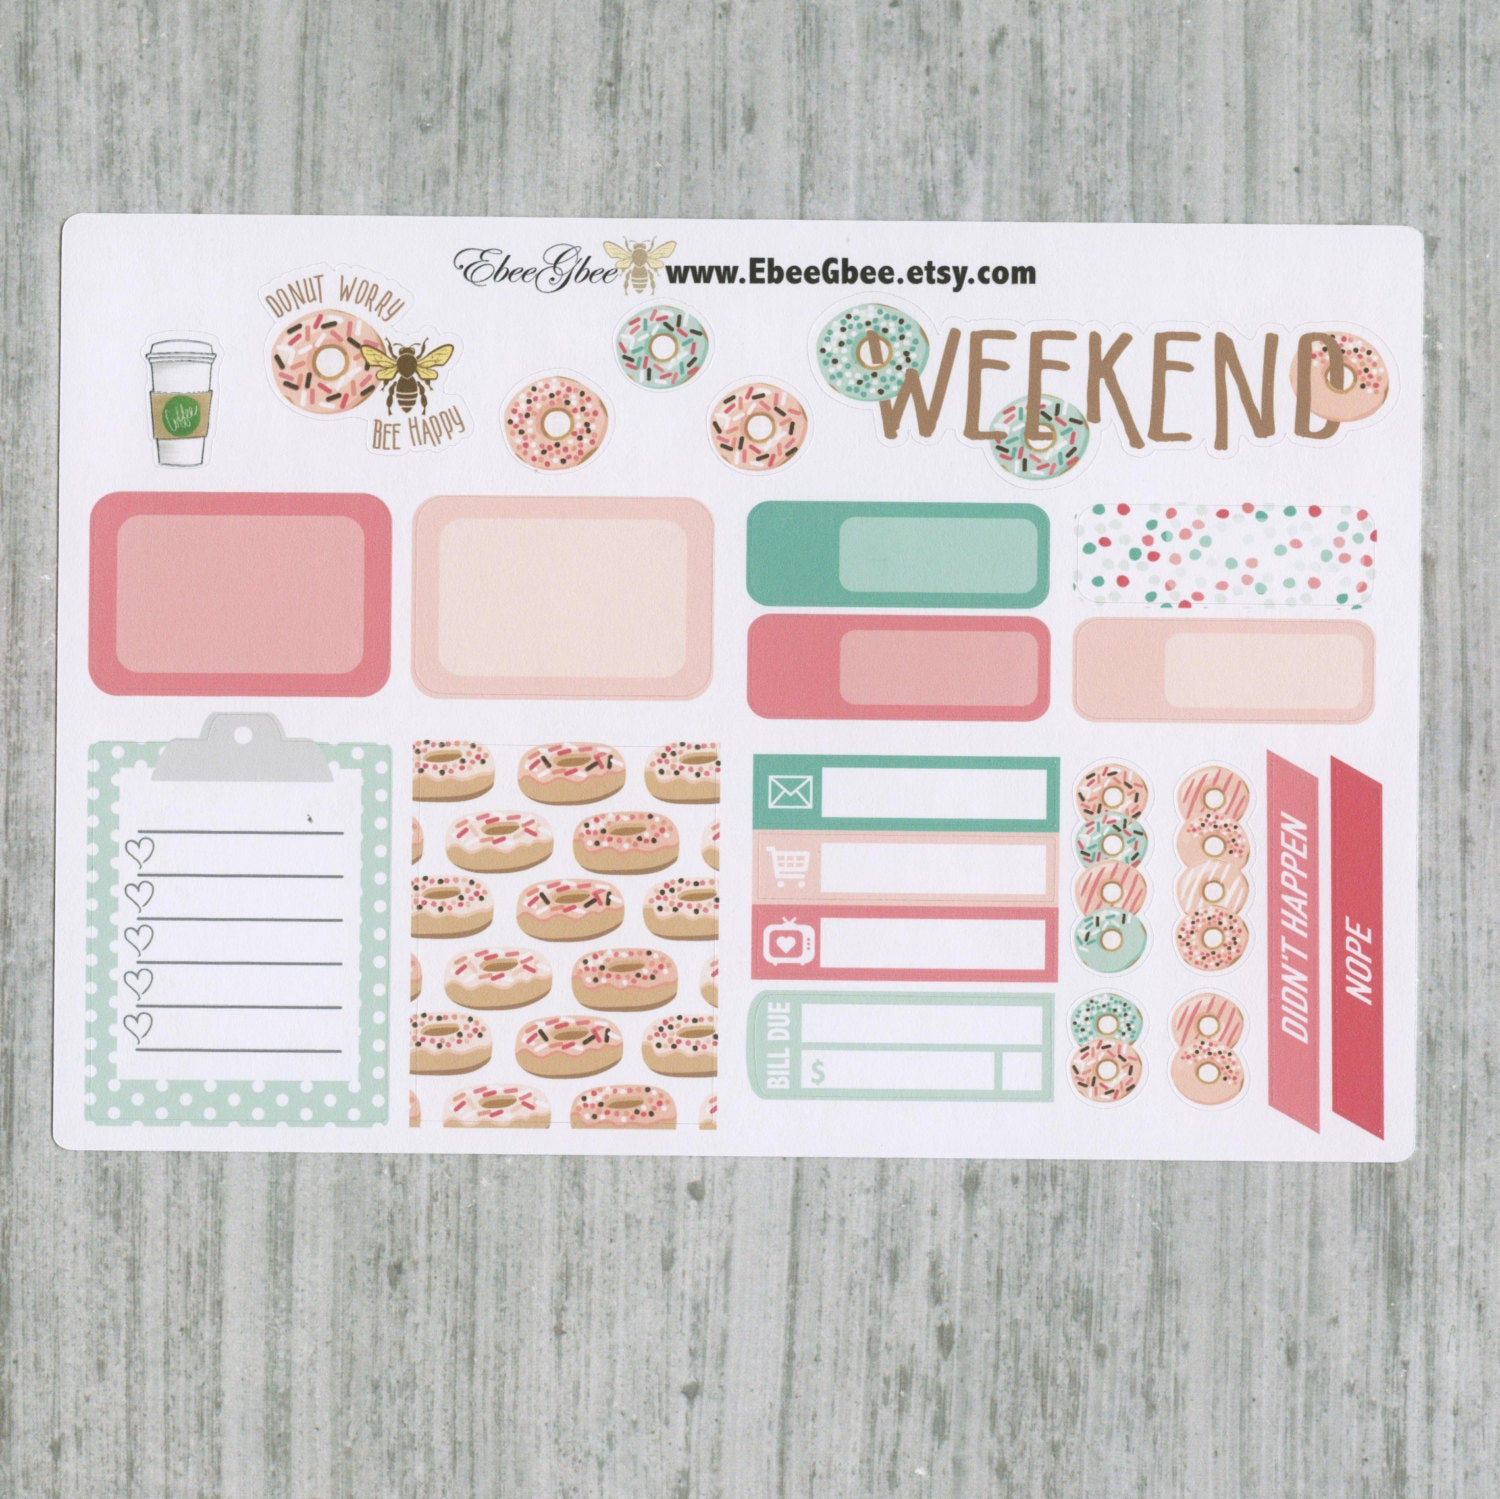 DONUT SAMPLER Weekly Planner Sticker Set | Peach Rose Mint PIne